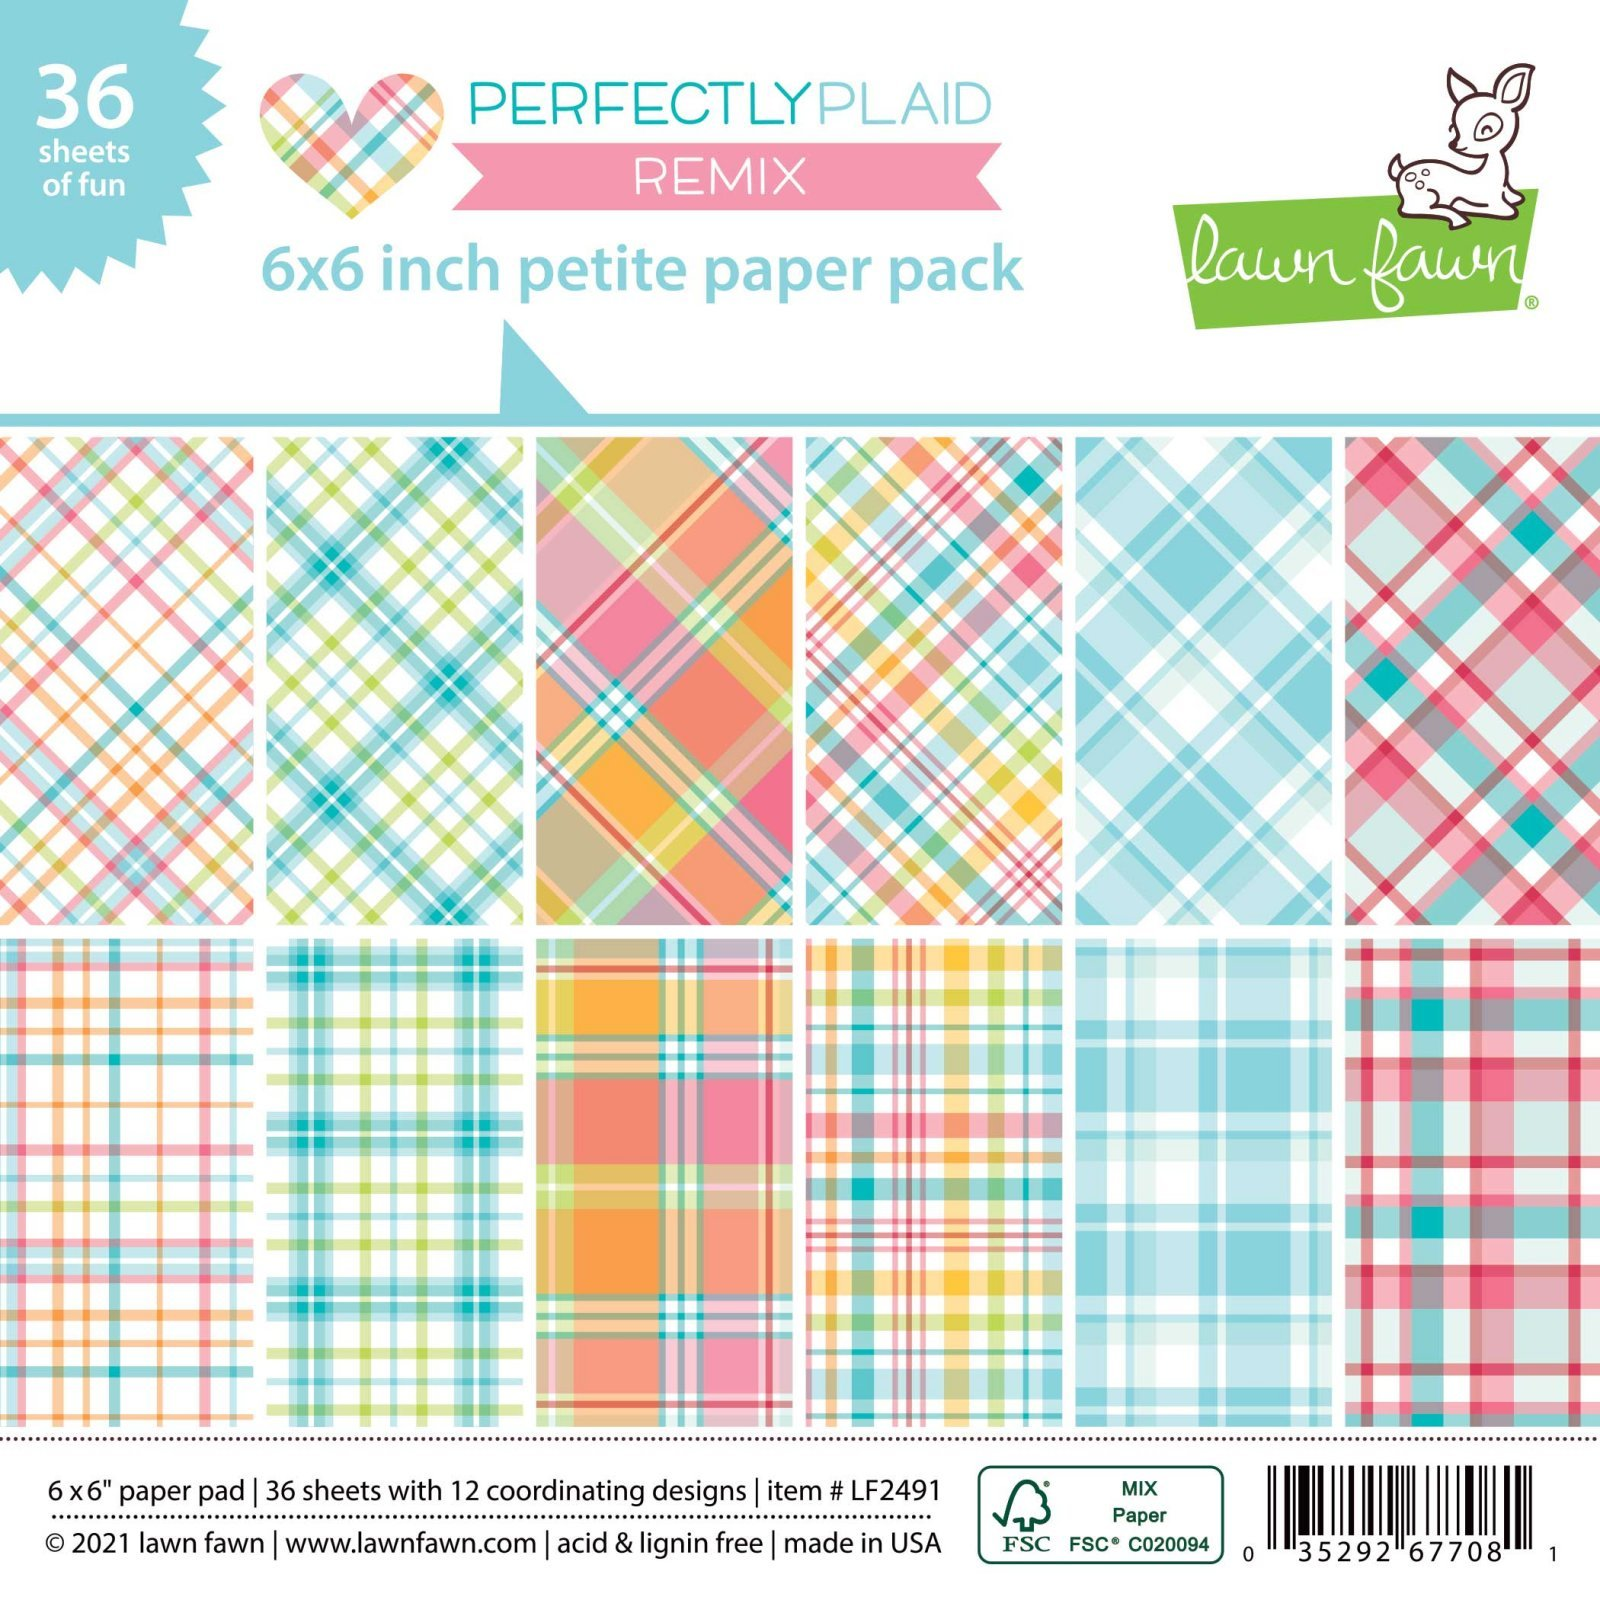 Lawn Fawn - Perfectly Plaid, 6x6 Petite Paper Pack